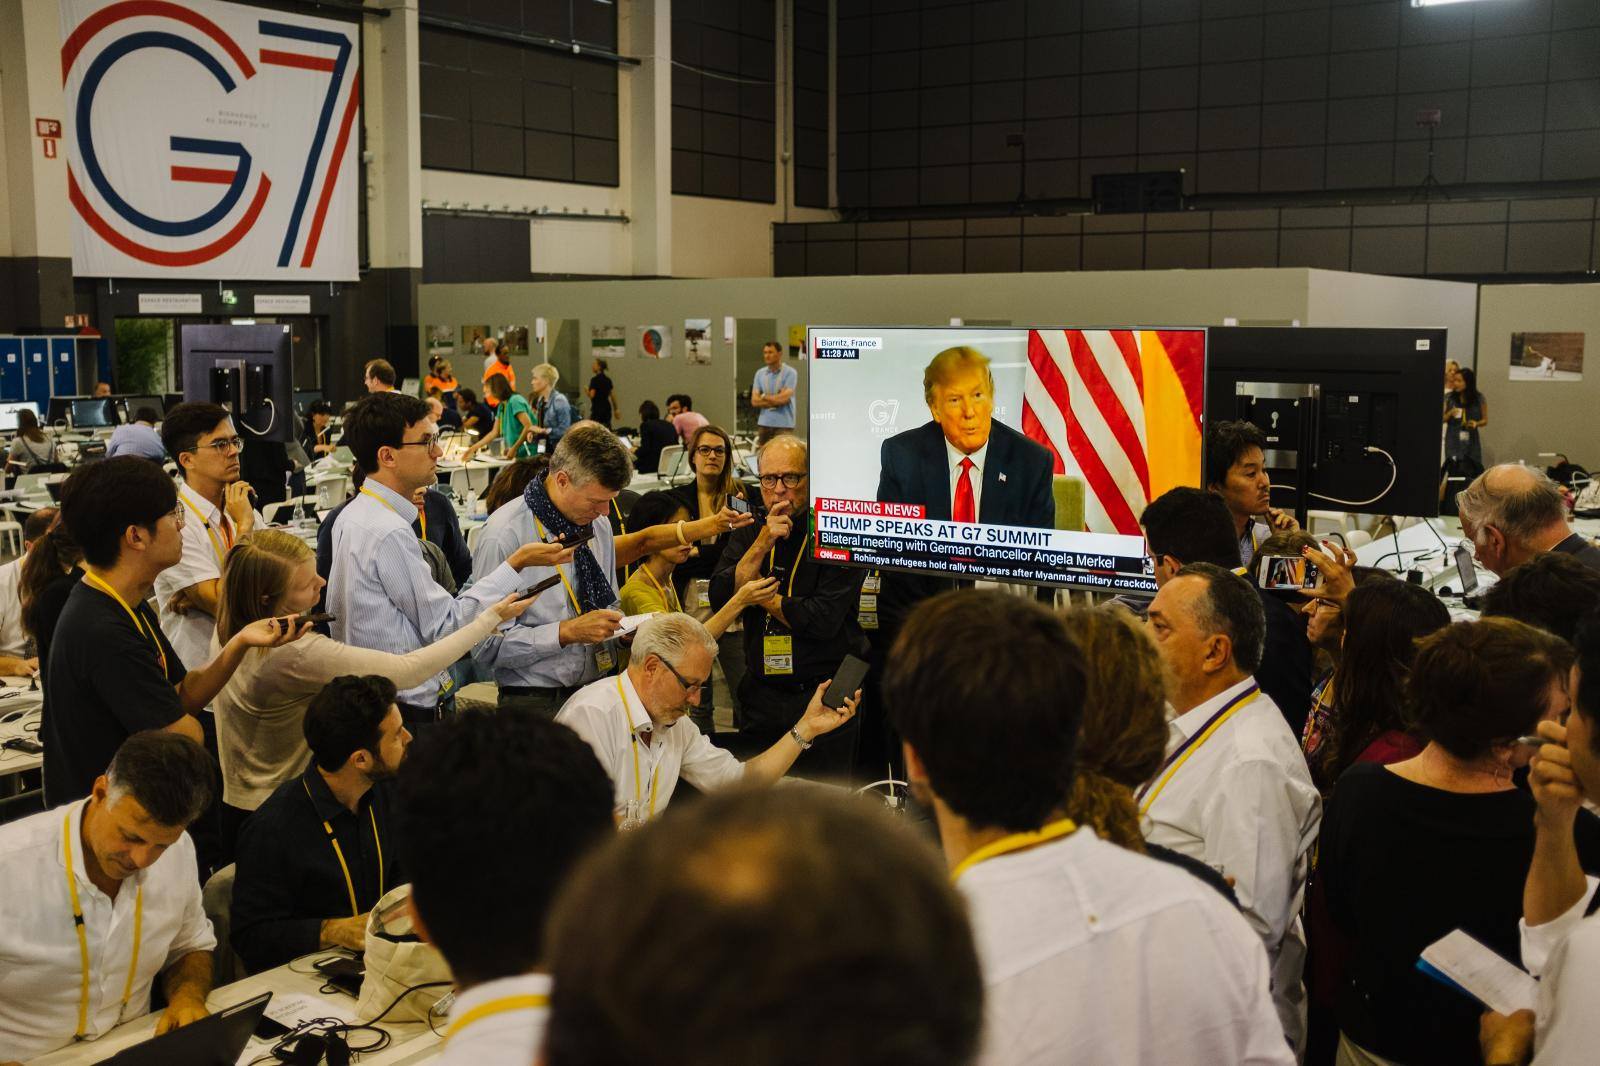 2019-08-26 - Journalists in the press center watch American president Donald Trump speak with press, during bilateral talk with german chancellor Angela Merkel.